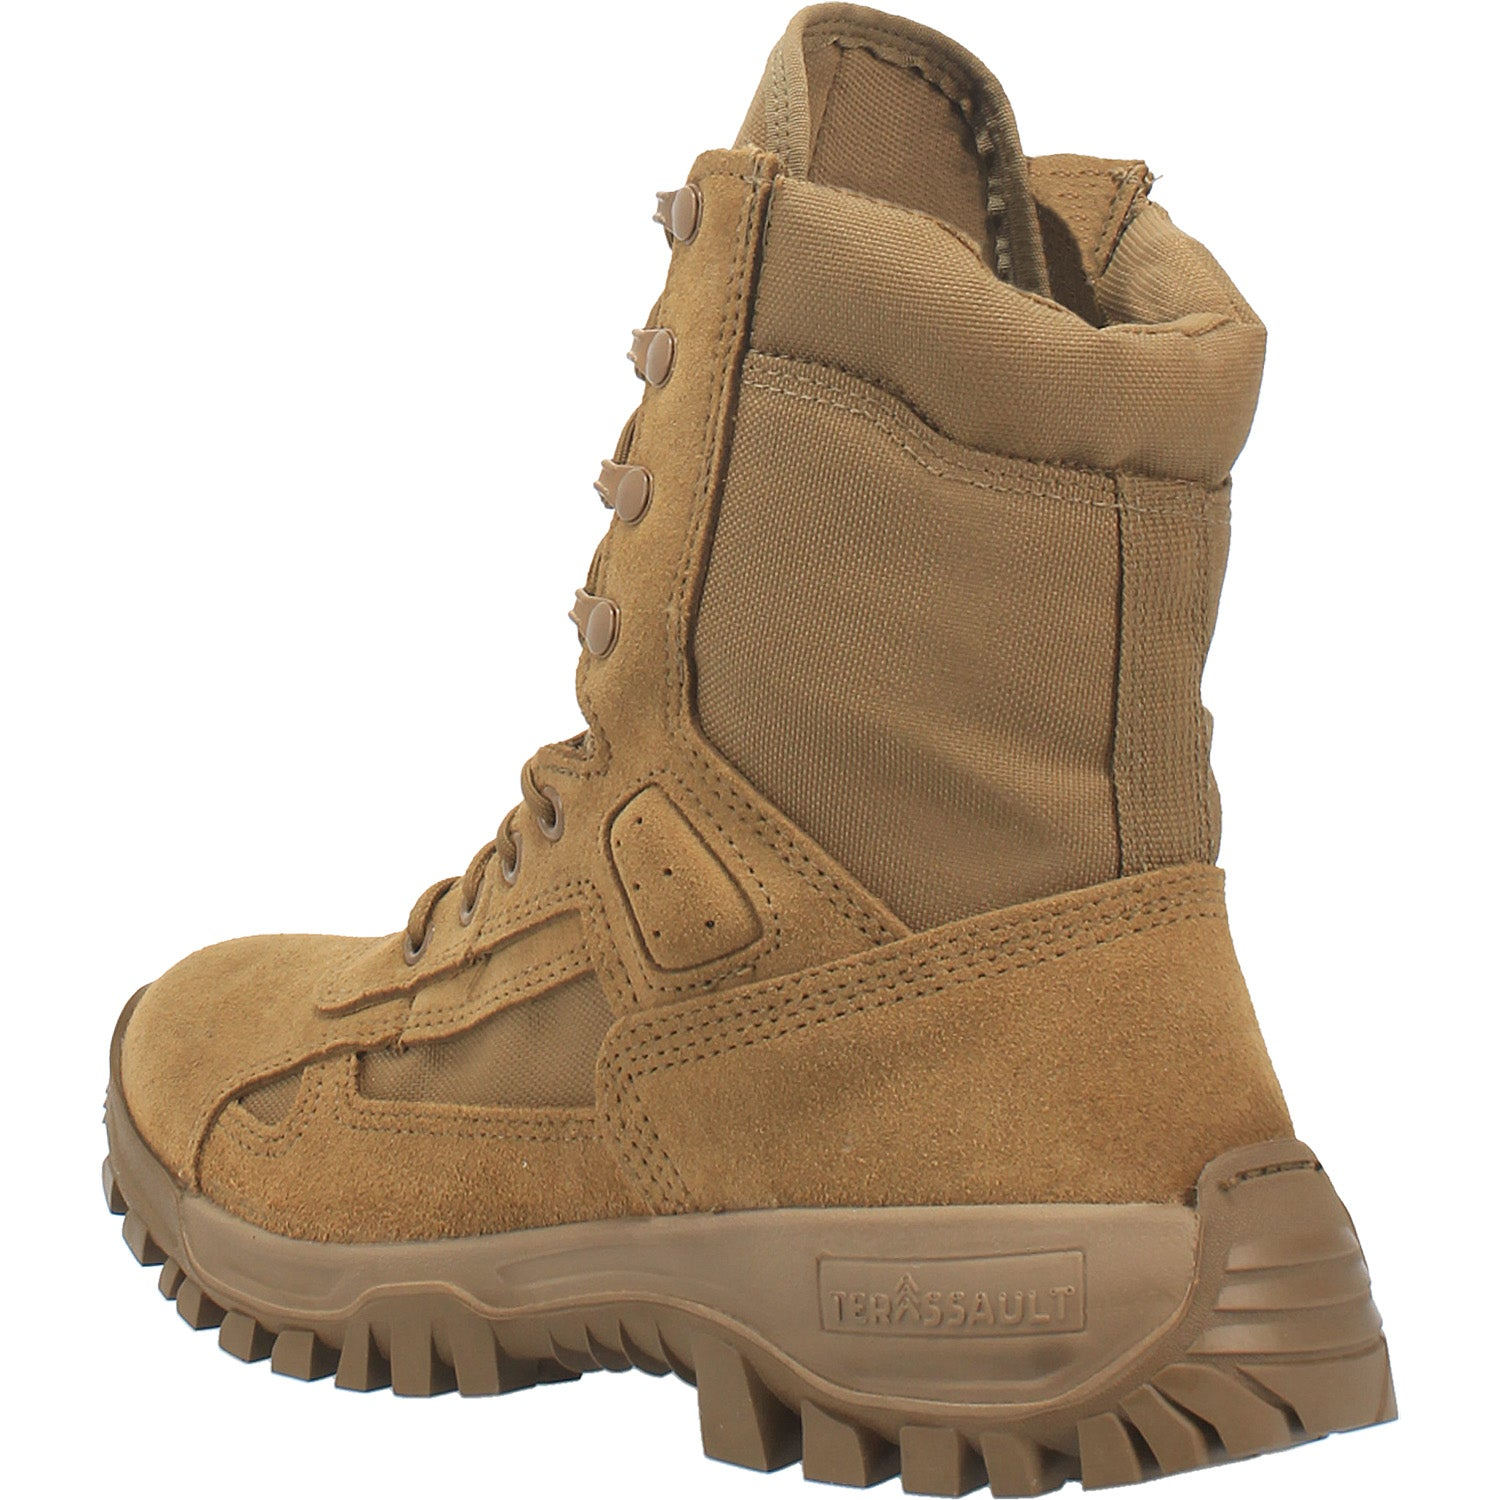 Terassault T1 Hot Weather Performance Combat Boot 14940747300906